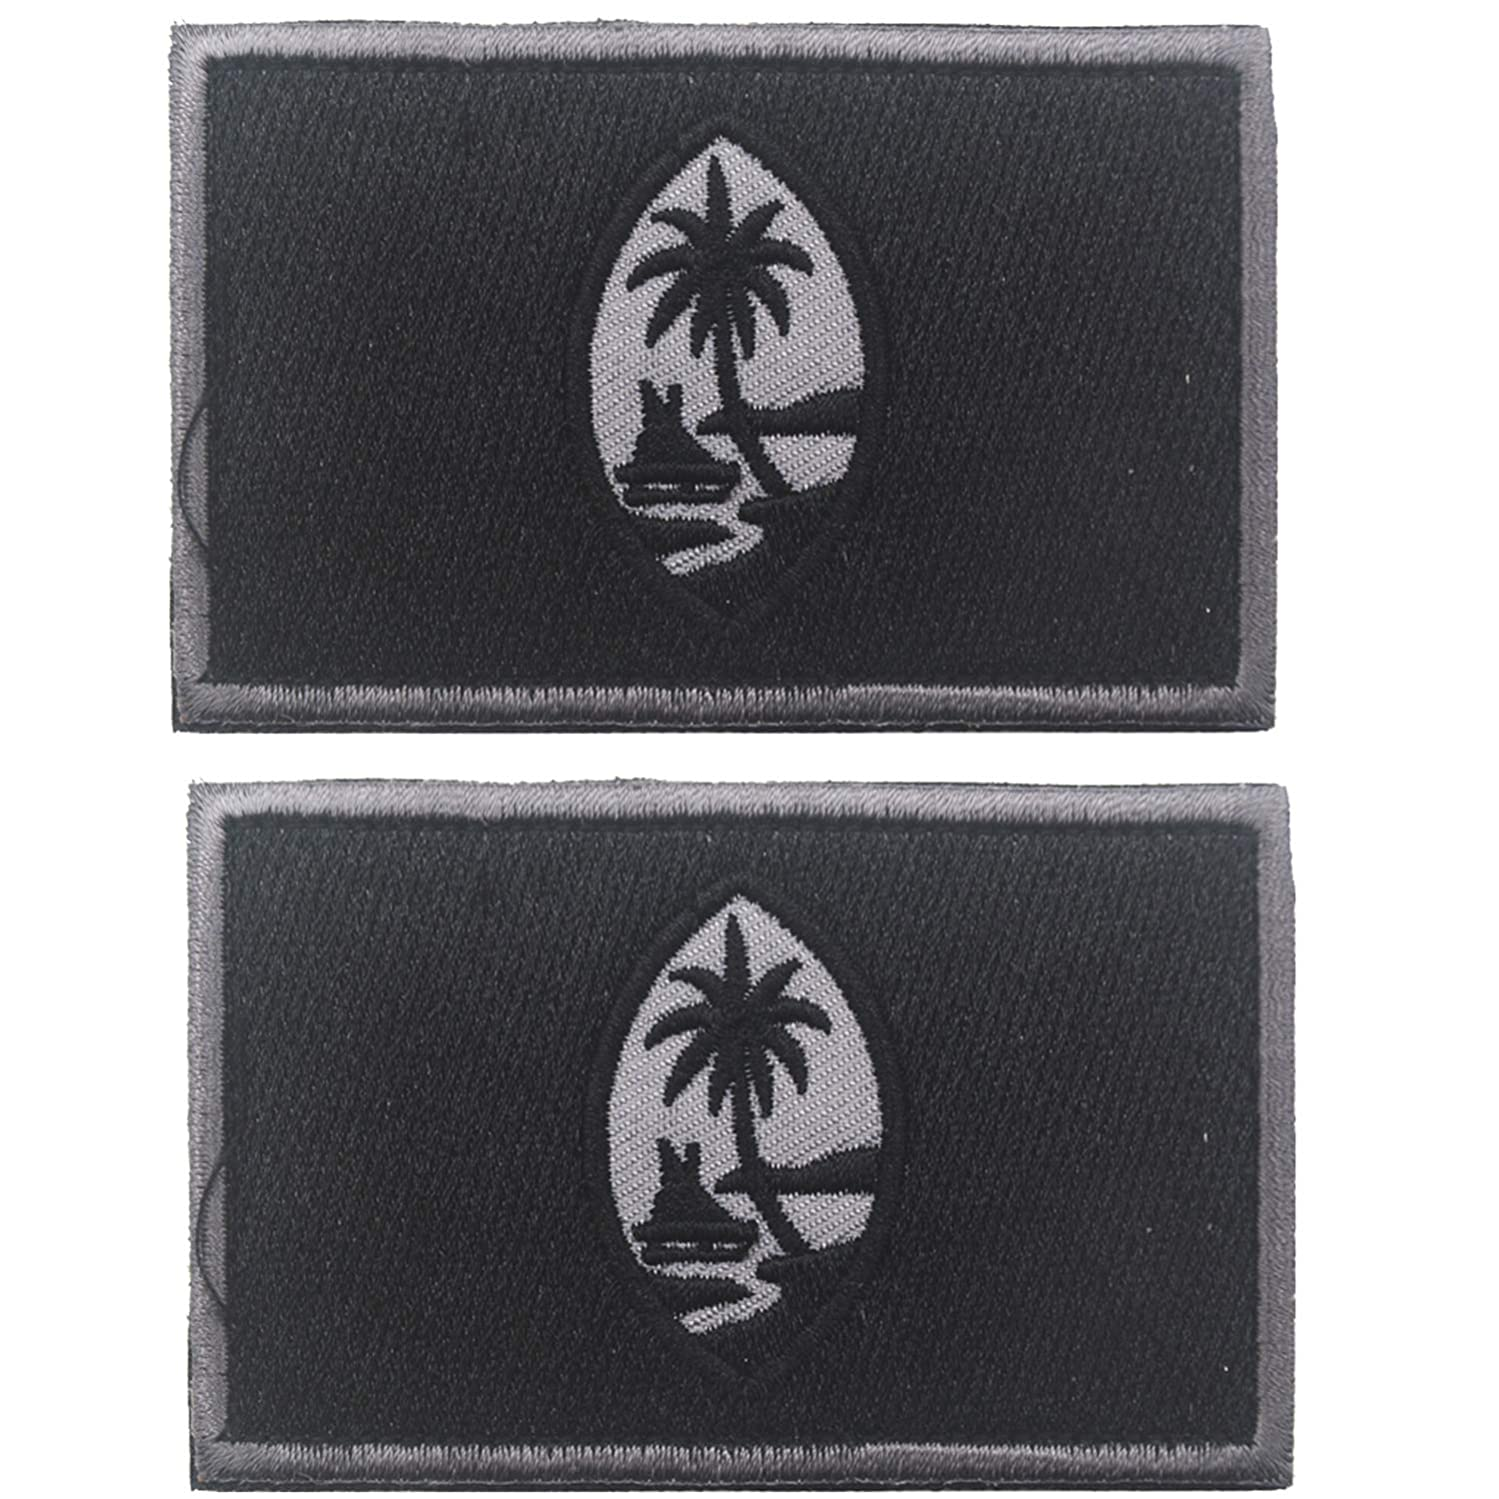 Guam Guamanian Territory of The United States National Flag Embroidered Hook & Loop Patch Tactical Military Morale Emblem Patches Applique Badge 2PCS